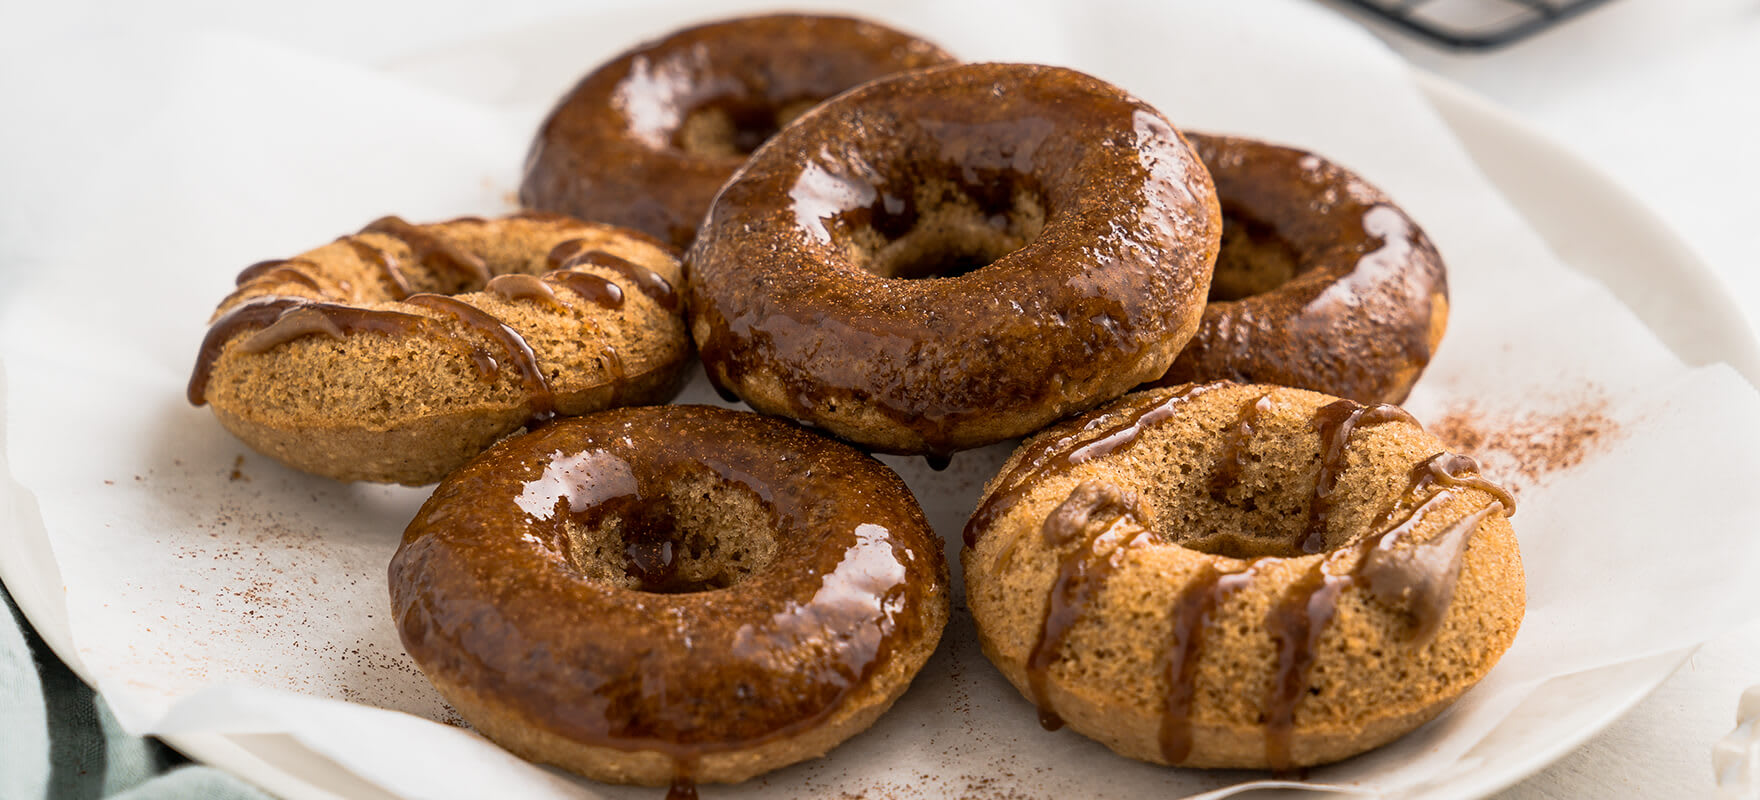 Baked chai donuts image 2